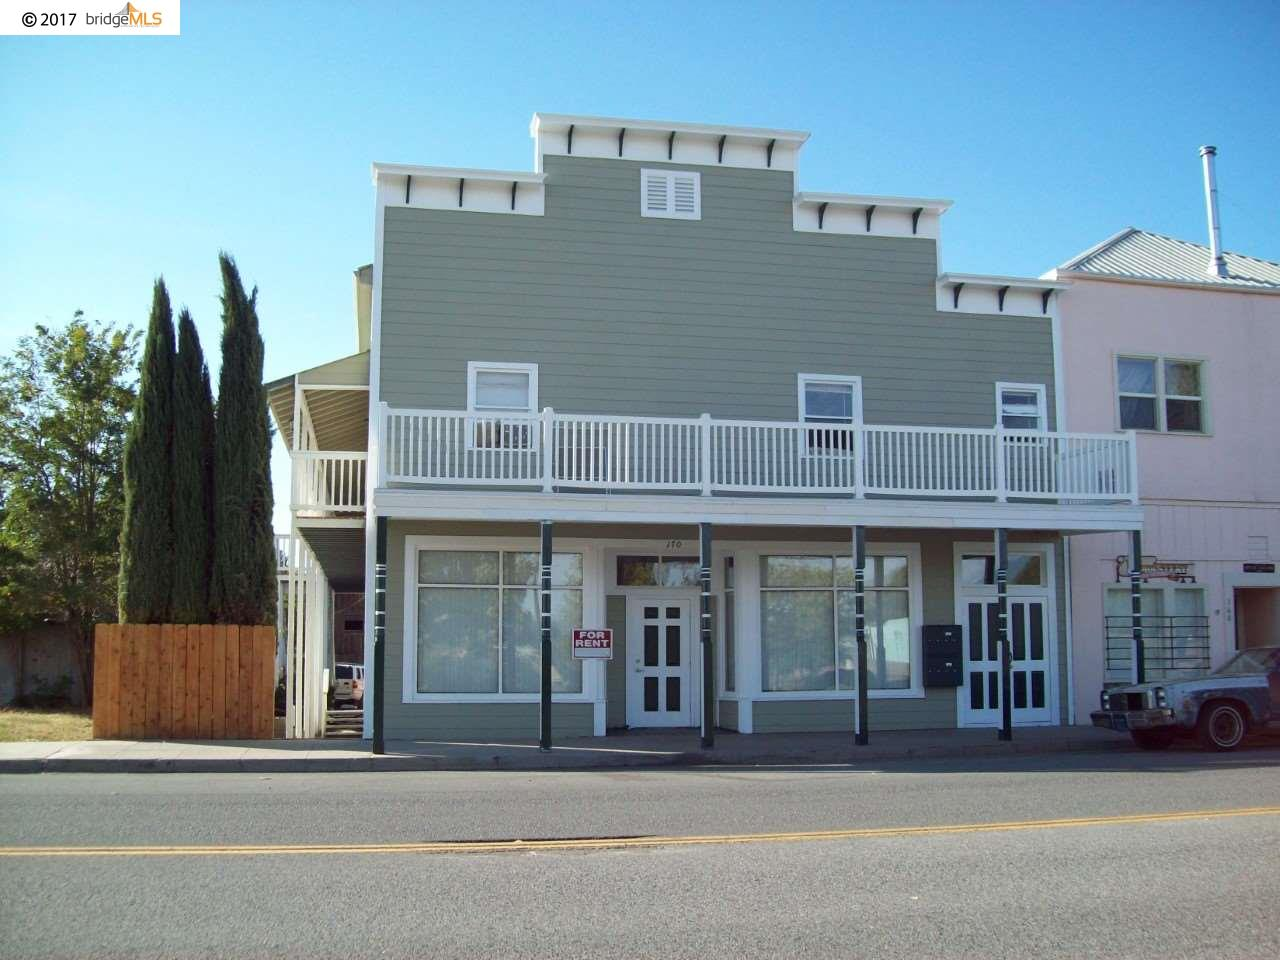 Additional photo for property listing at 165 S 11Th Street 165 S 11Th Street Montague, California 96064 United States